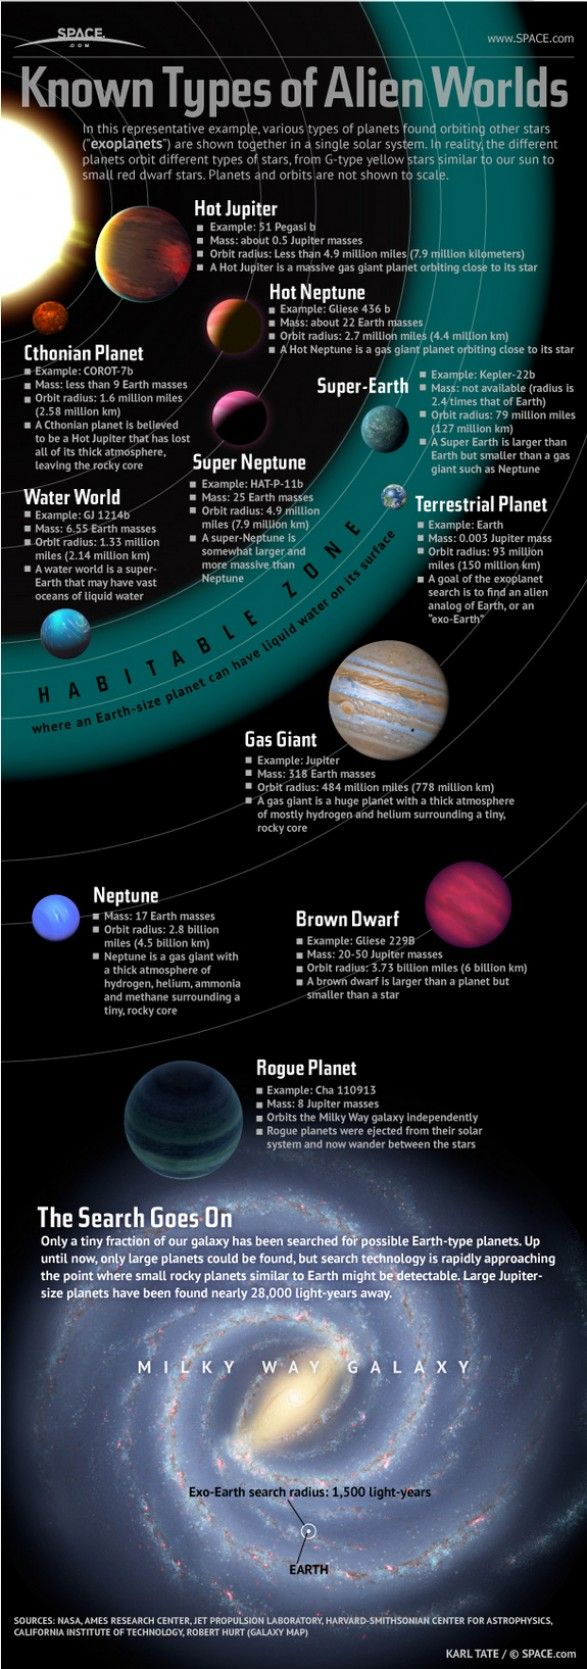 700 alien planets beyond the solar system that scientists have discovered.